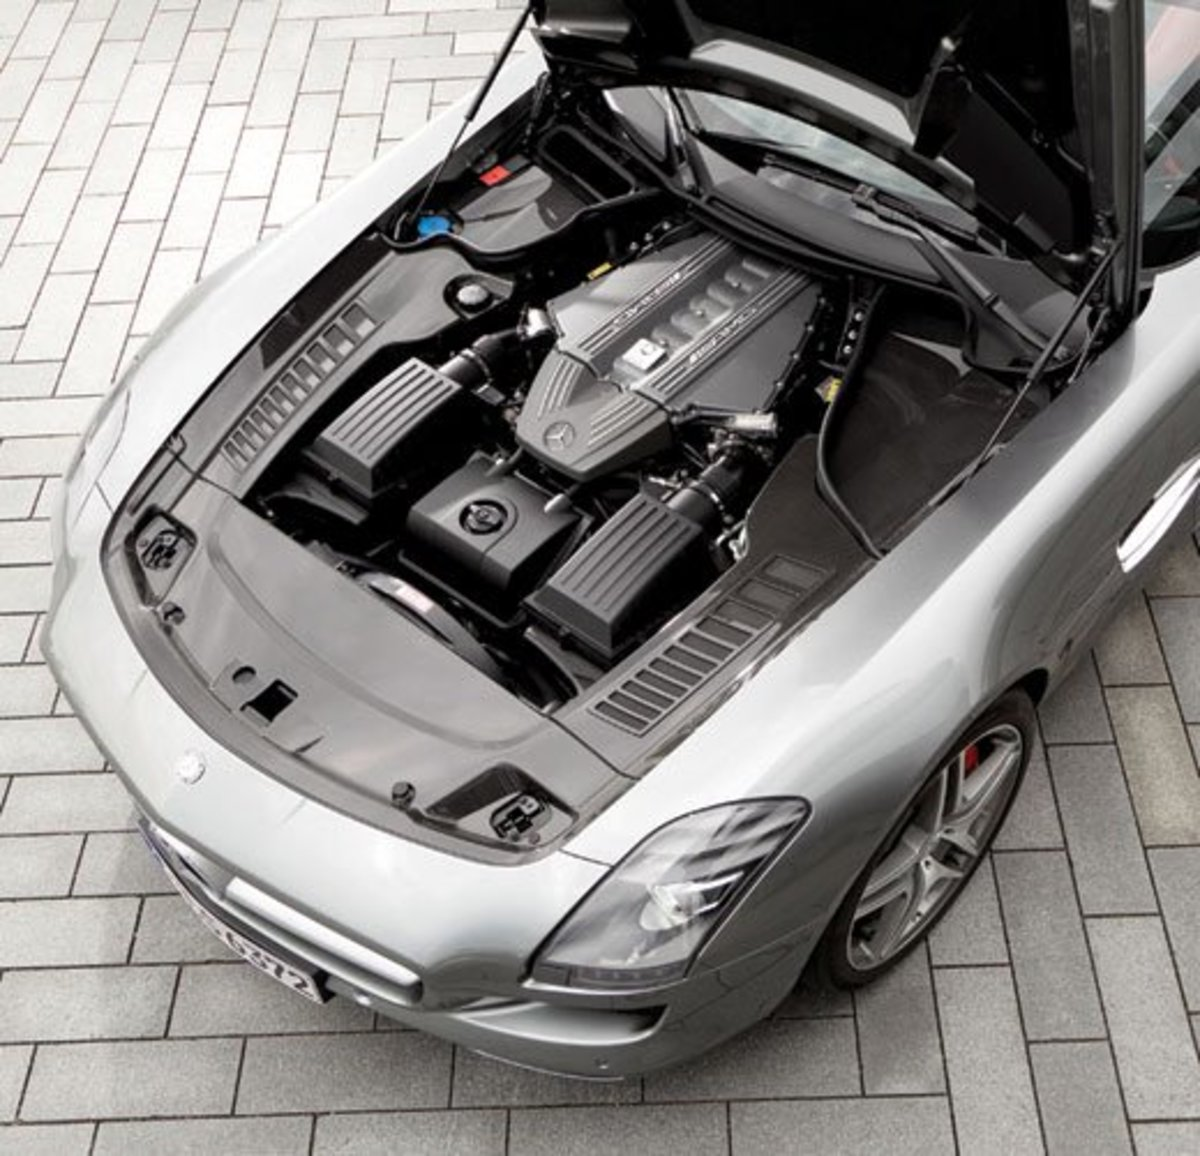 The engine bay of the Mercedes Benz SLS AMG, set back and low, to keep the center of gravity as low as possible in an effort to improve handling.